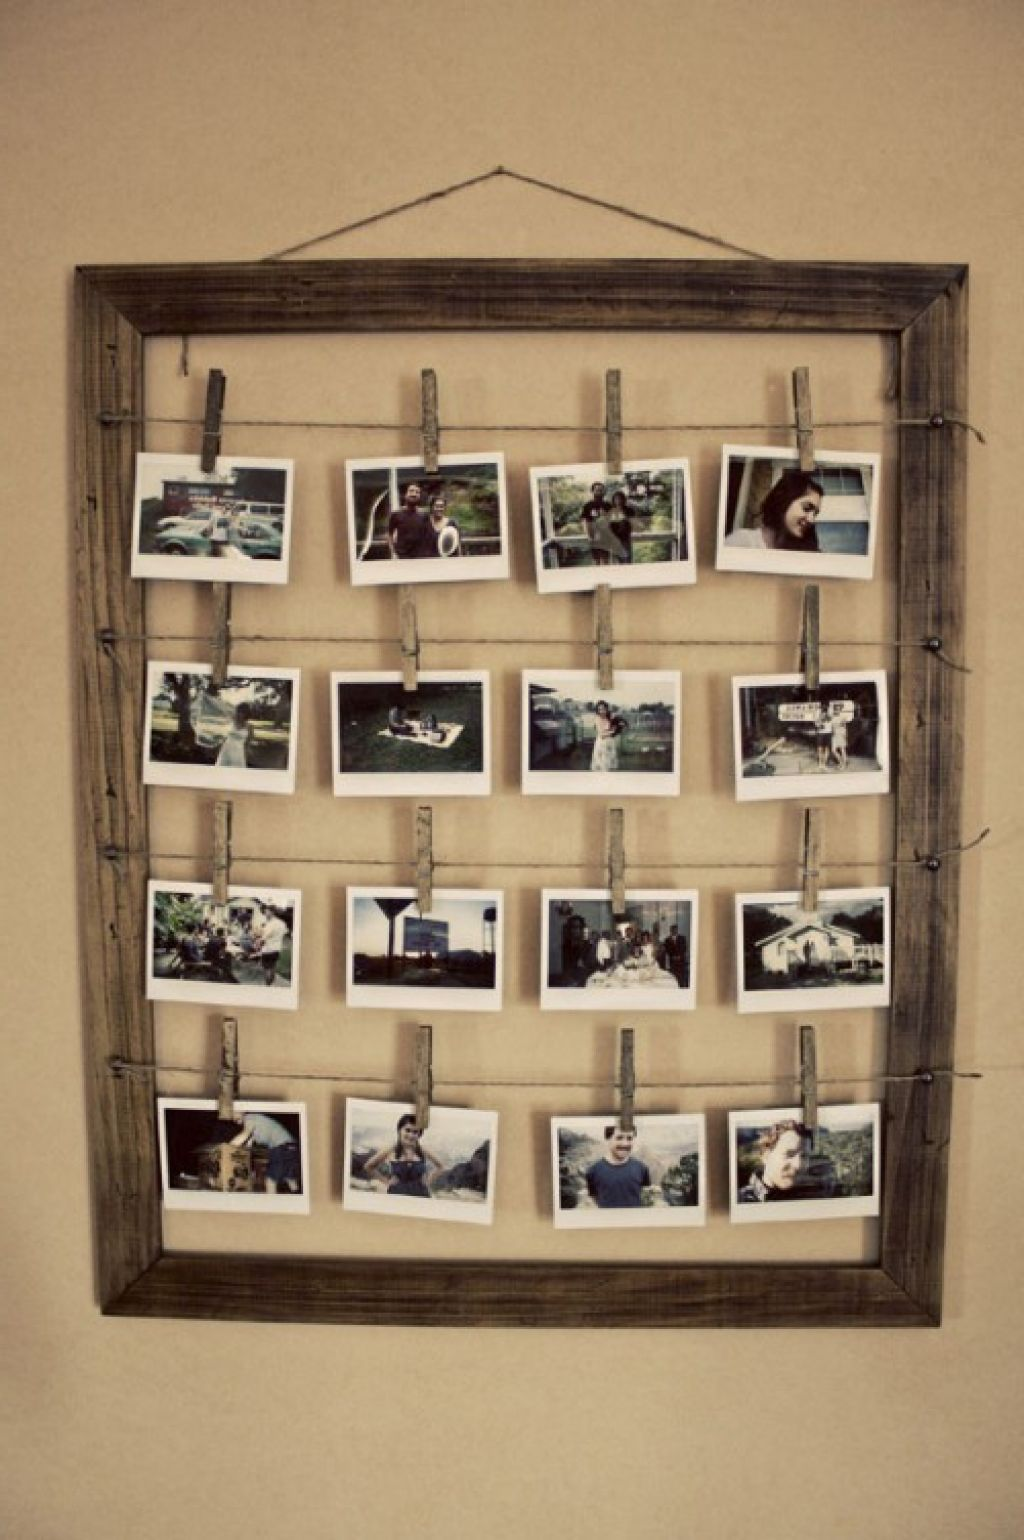 Unique Design For Homemade Floating Frame Ideas With Rustic Wooden ...